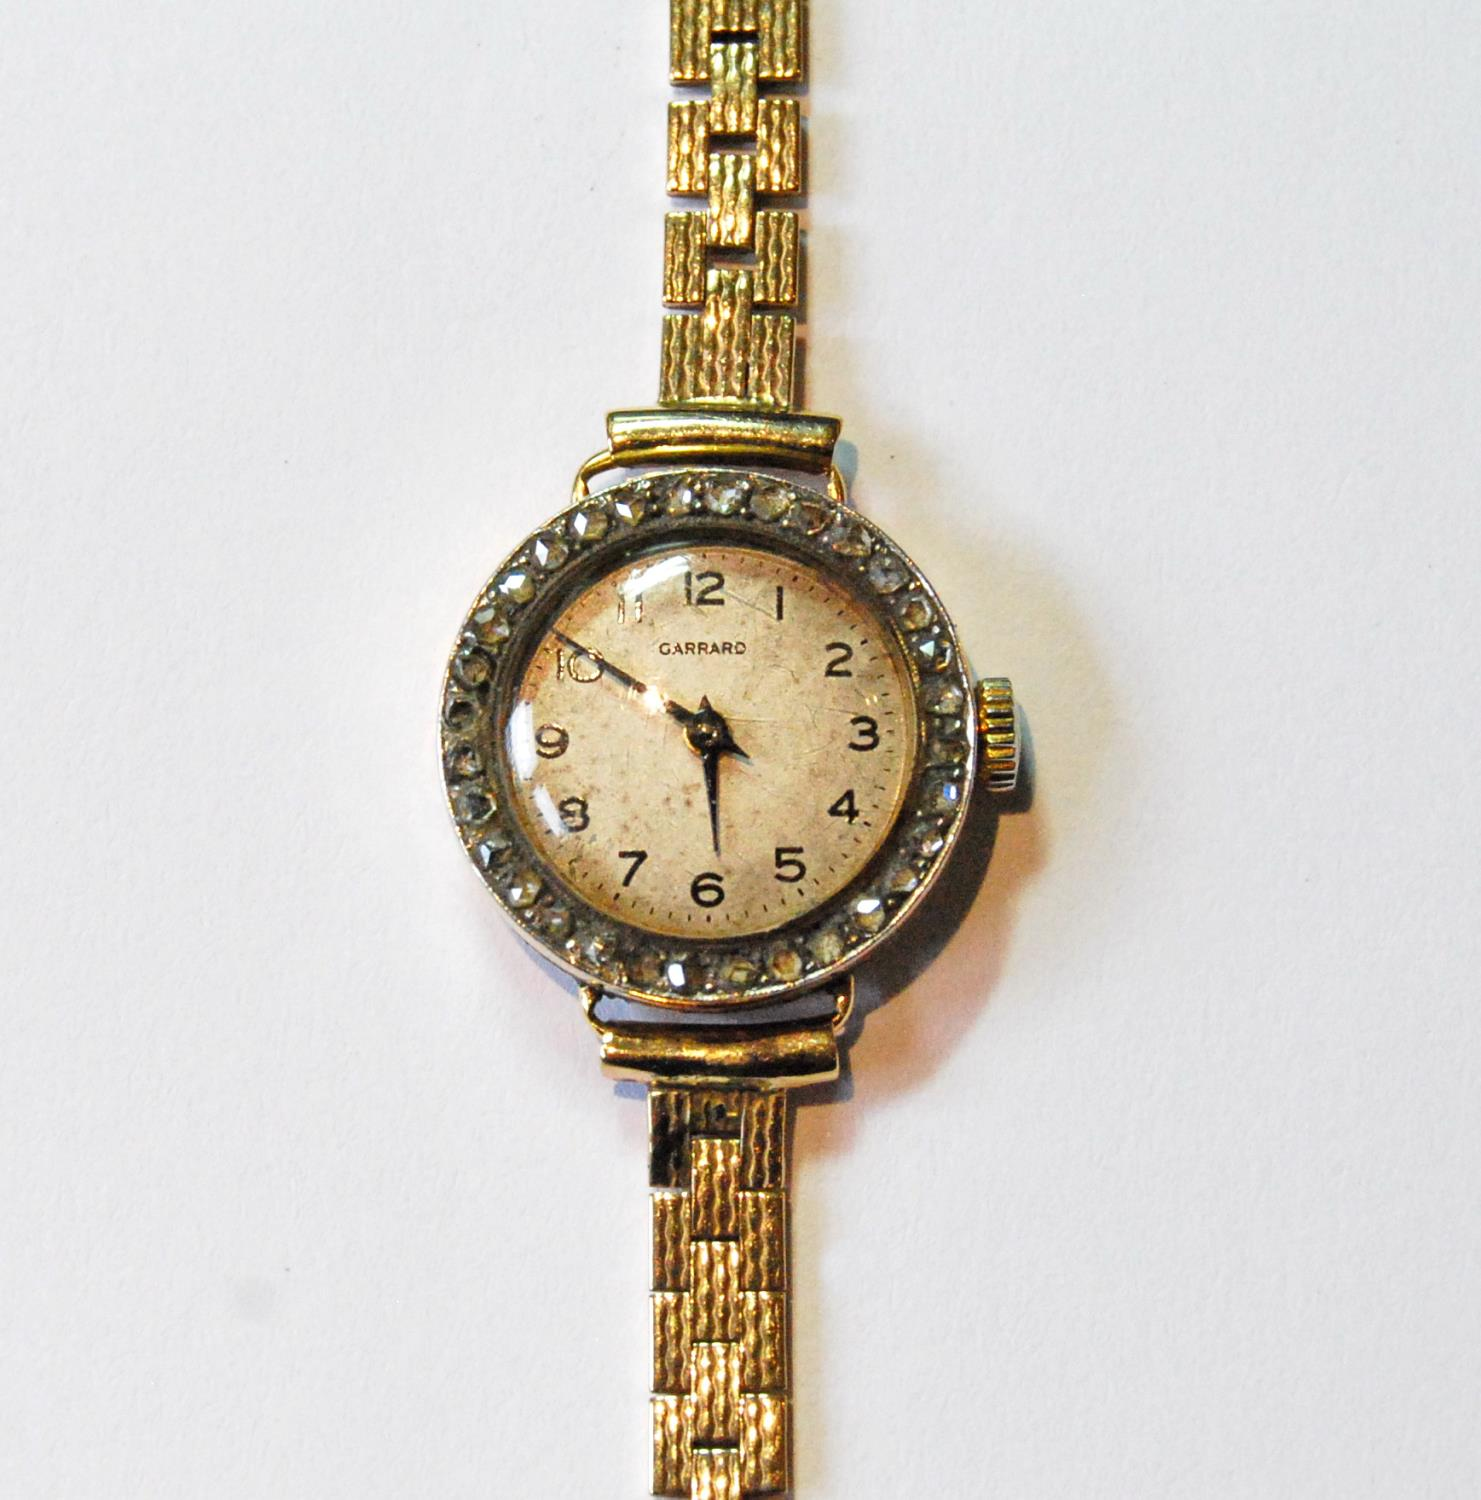 Garrard lady's 18ct gold watch with diamond-set bezel, 1919, movement replaced, on 9ct gold